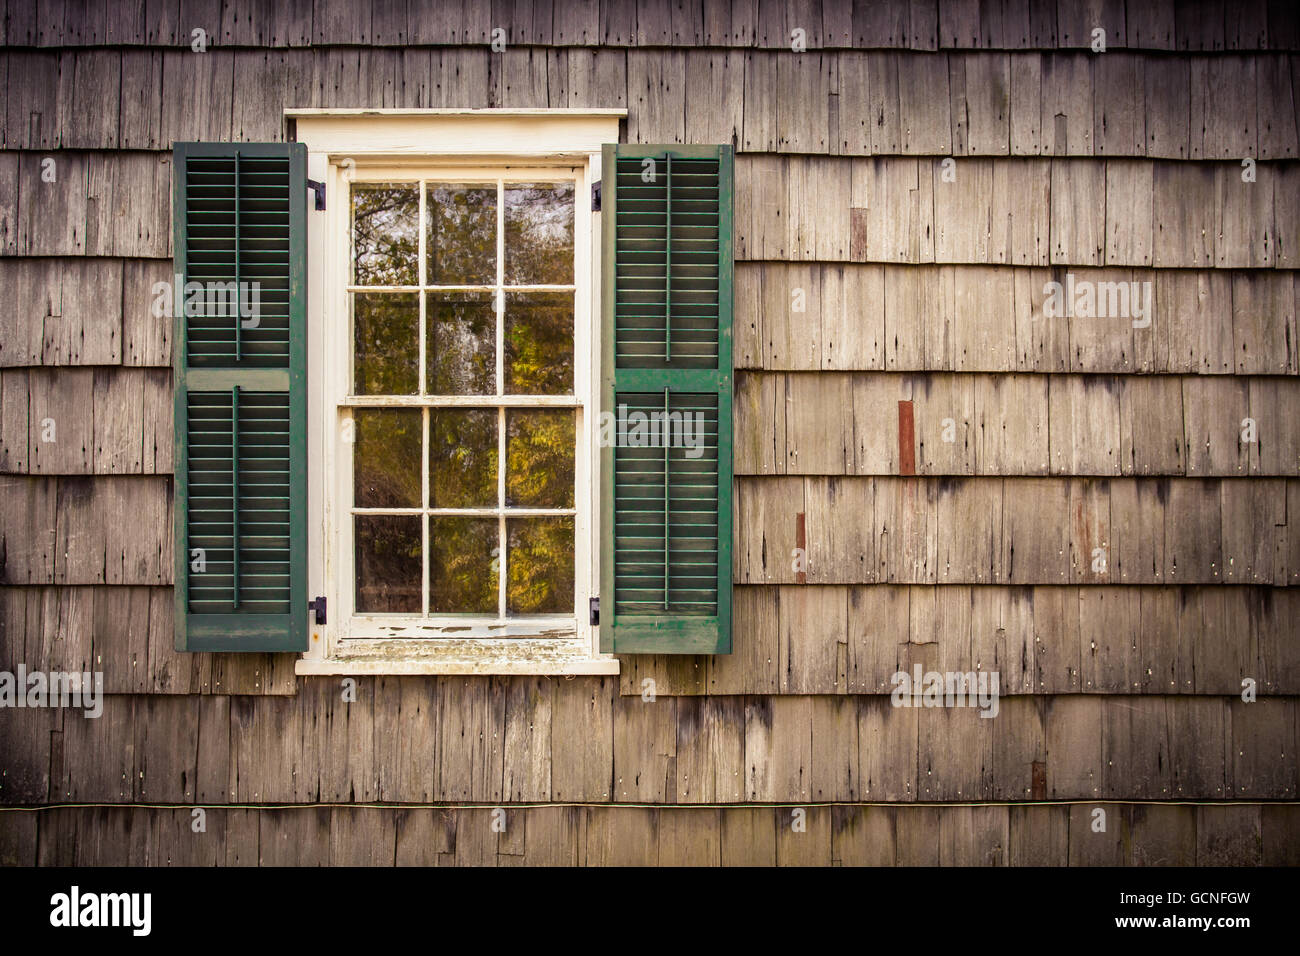 Details On Home Exterior With Window Shutters And Wooden Cedar Stock Photo Royalty Free Image